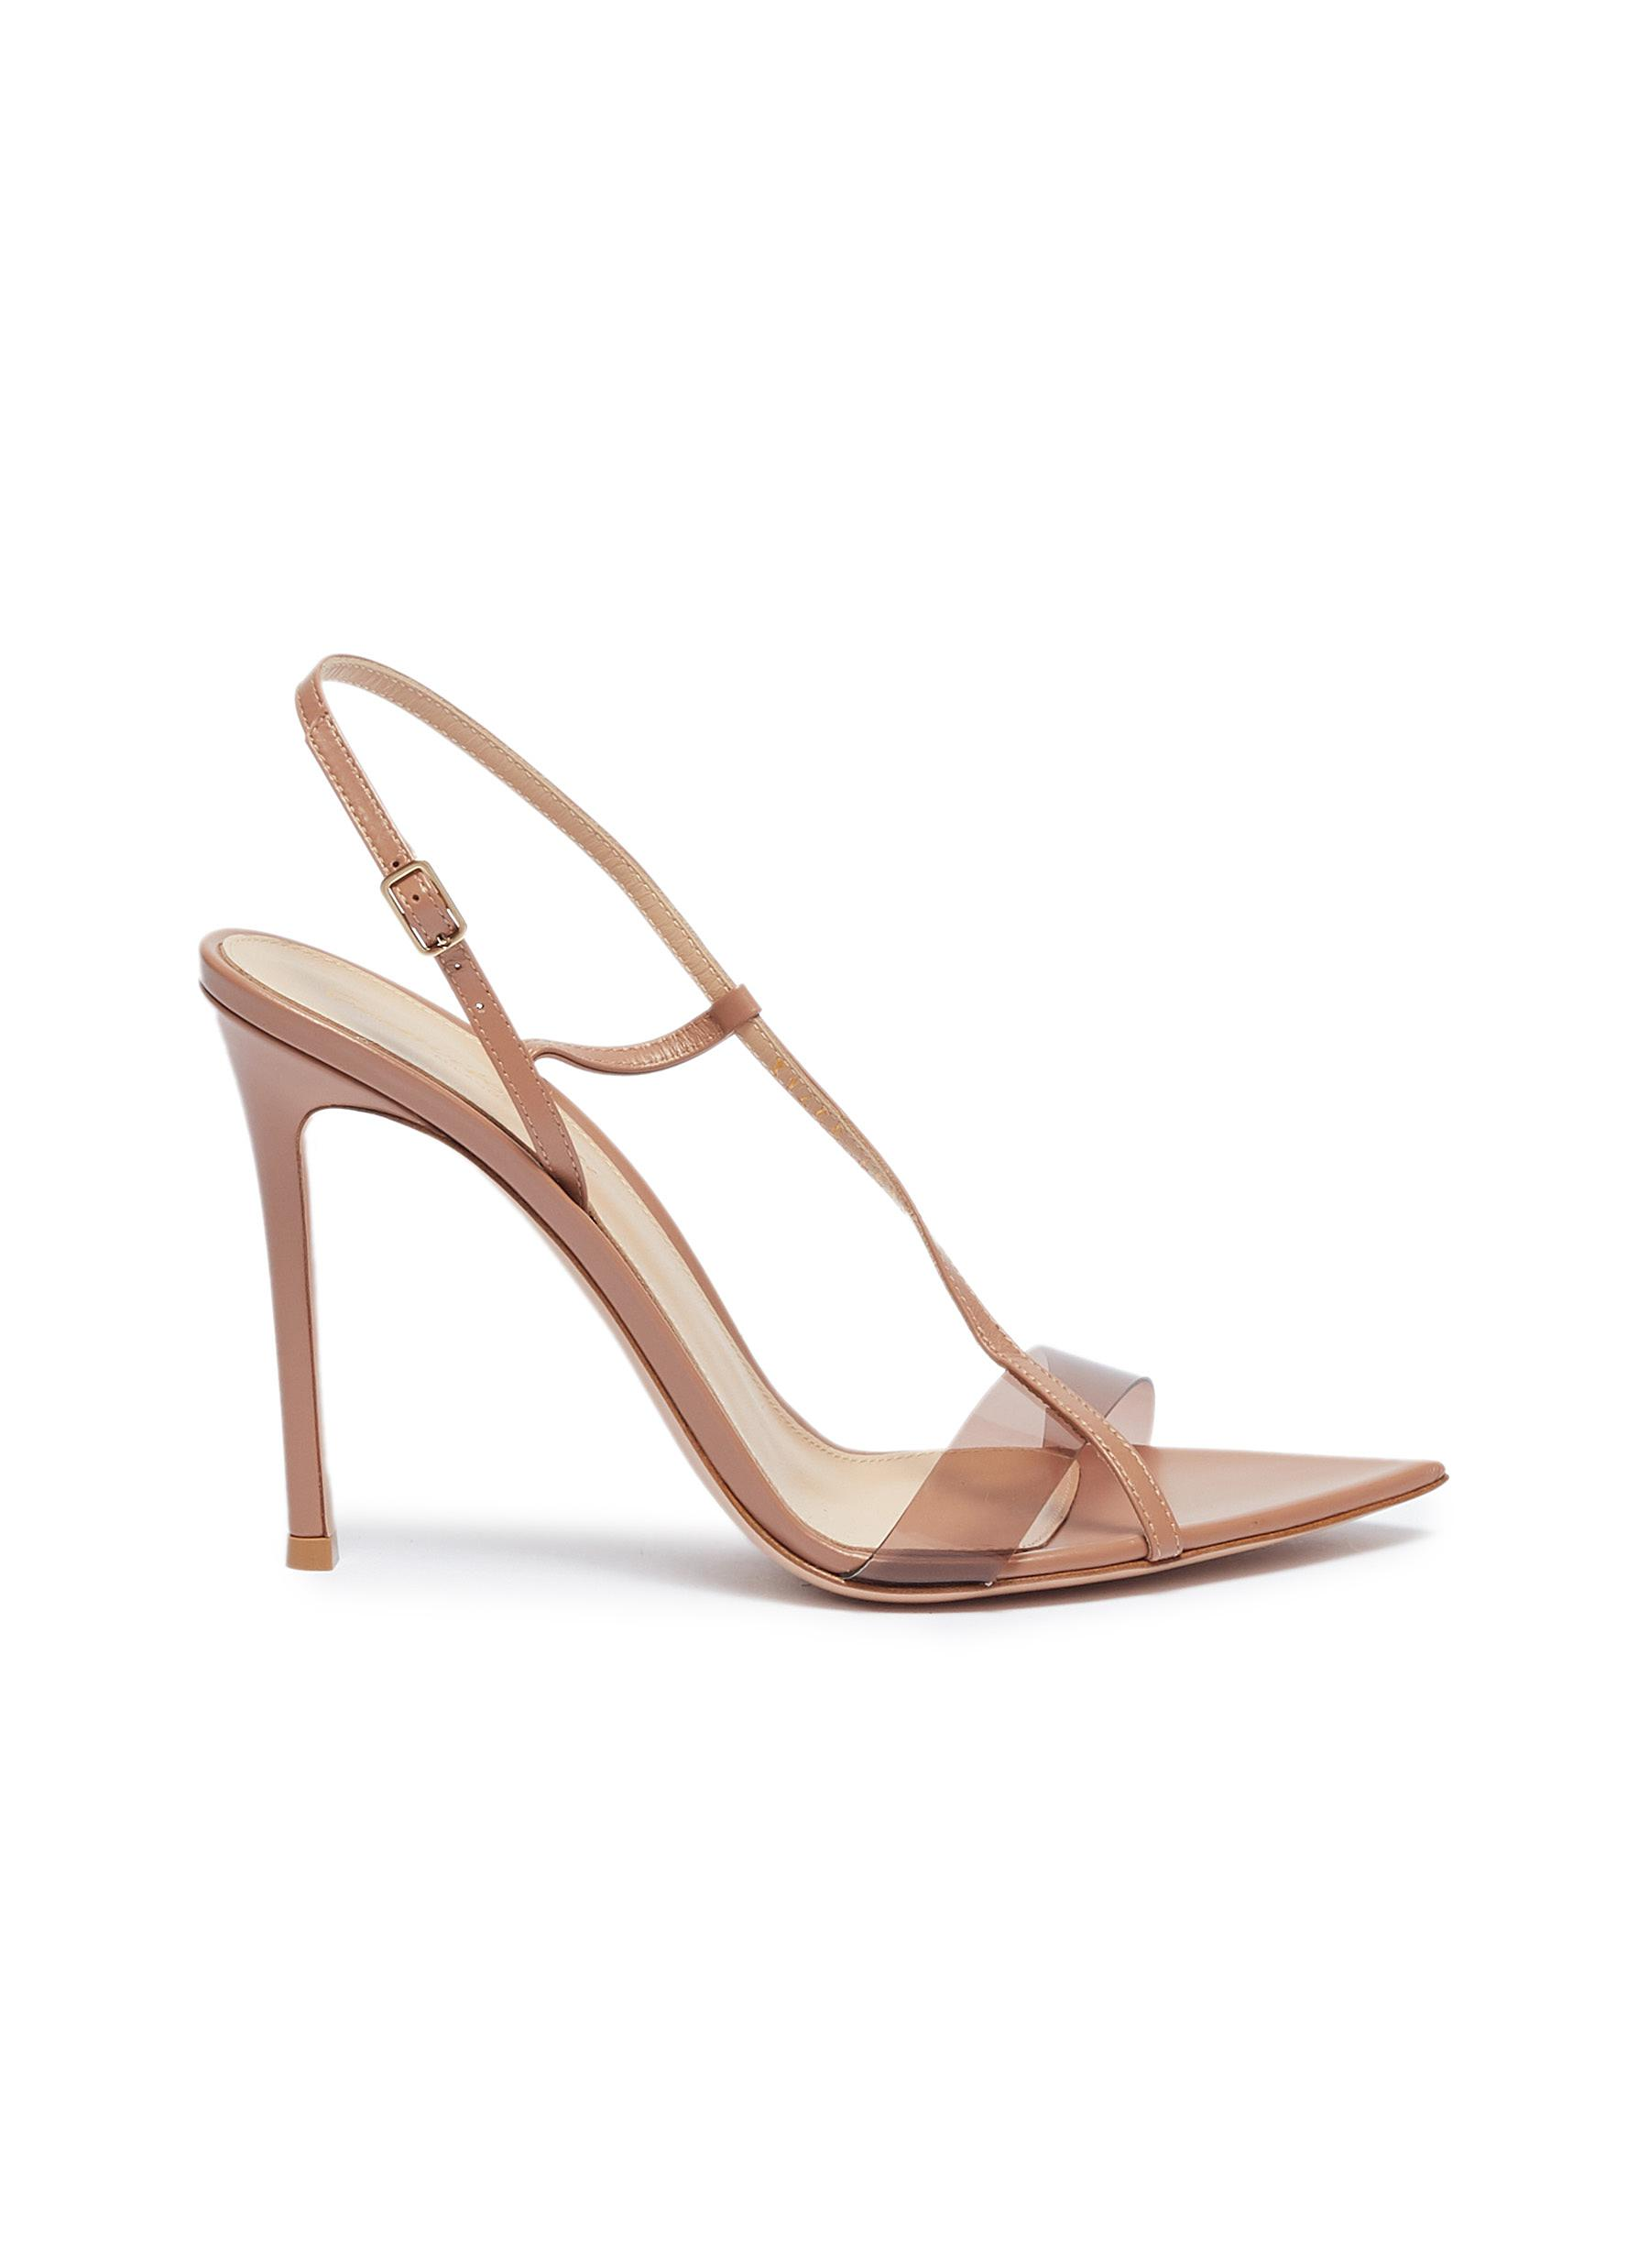 Slant PVC band leather sandals by Gianvito Rossi